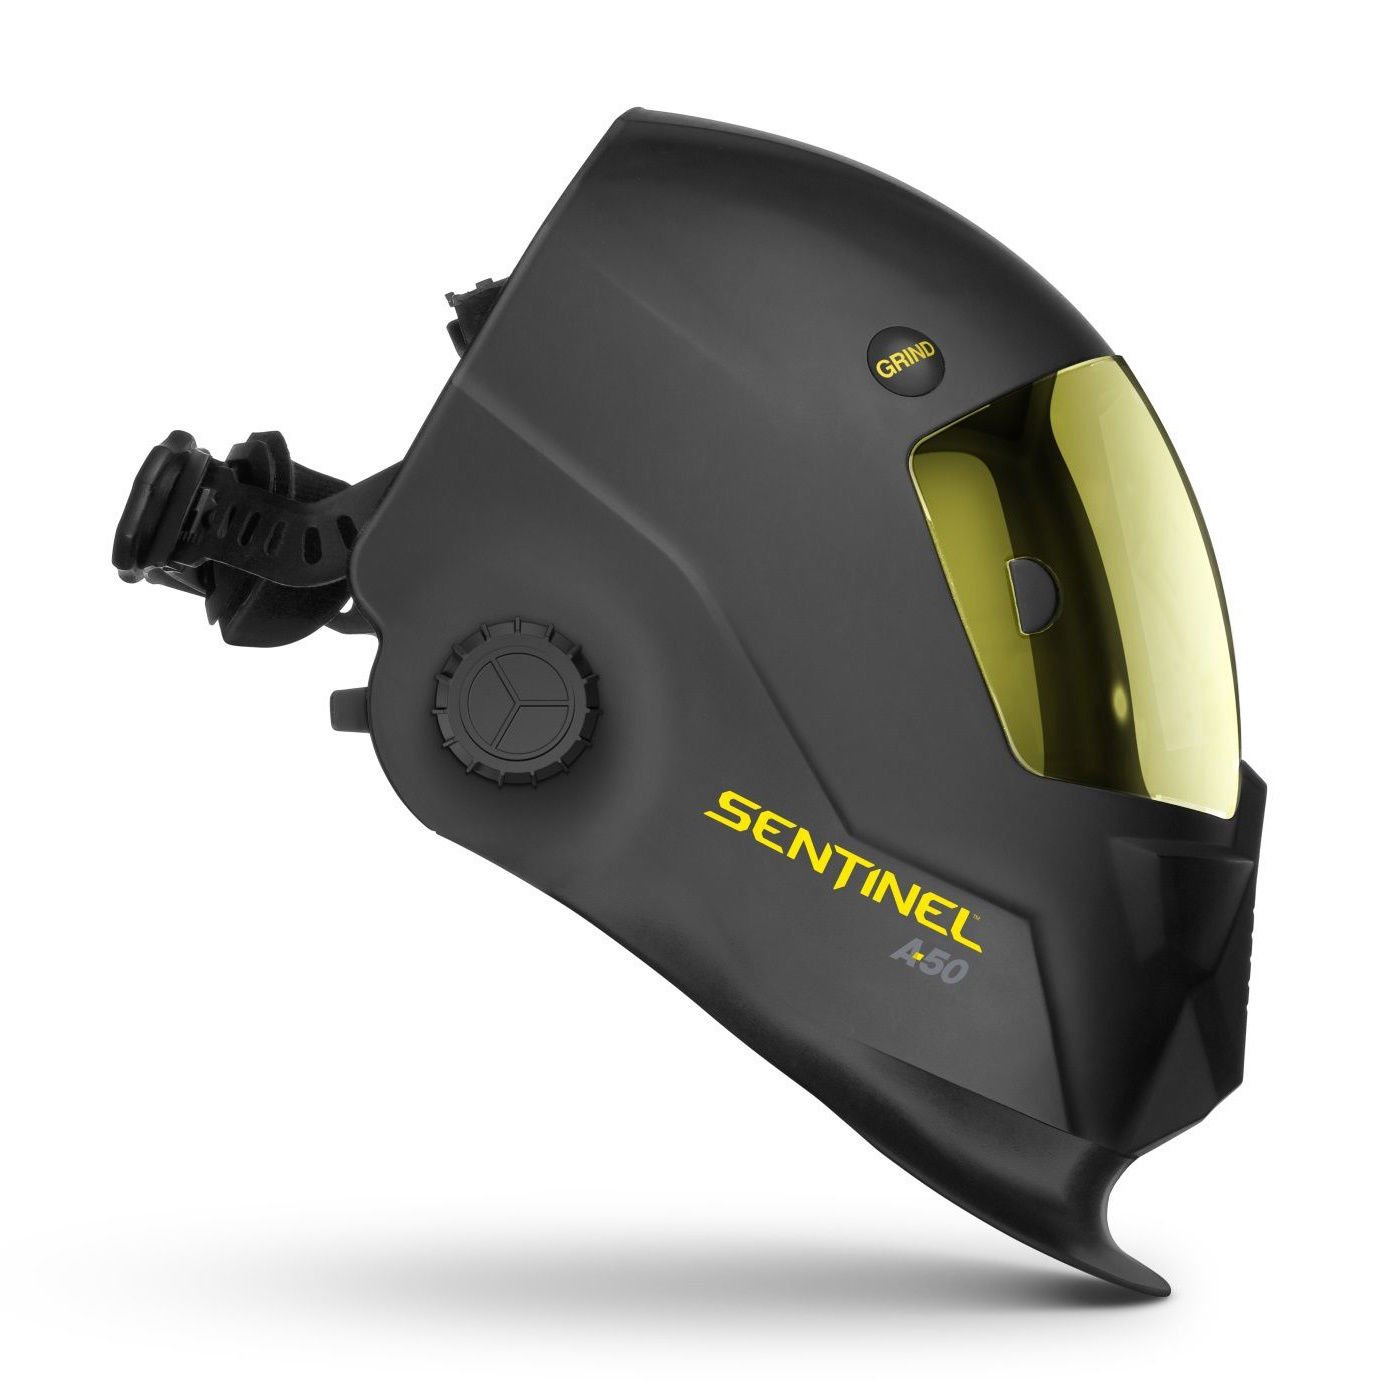 Esab Sentinel Automatic Welding A50 Helmet Hood, Part# 0700000800 - Brand New, Not In Original Packaging - Full Manufacturer's Warranty by ESAB (Image #5)